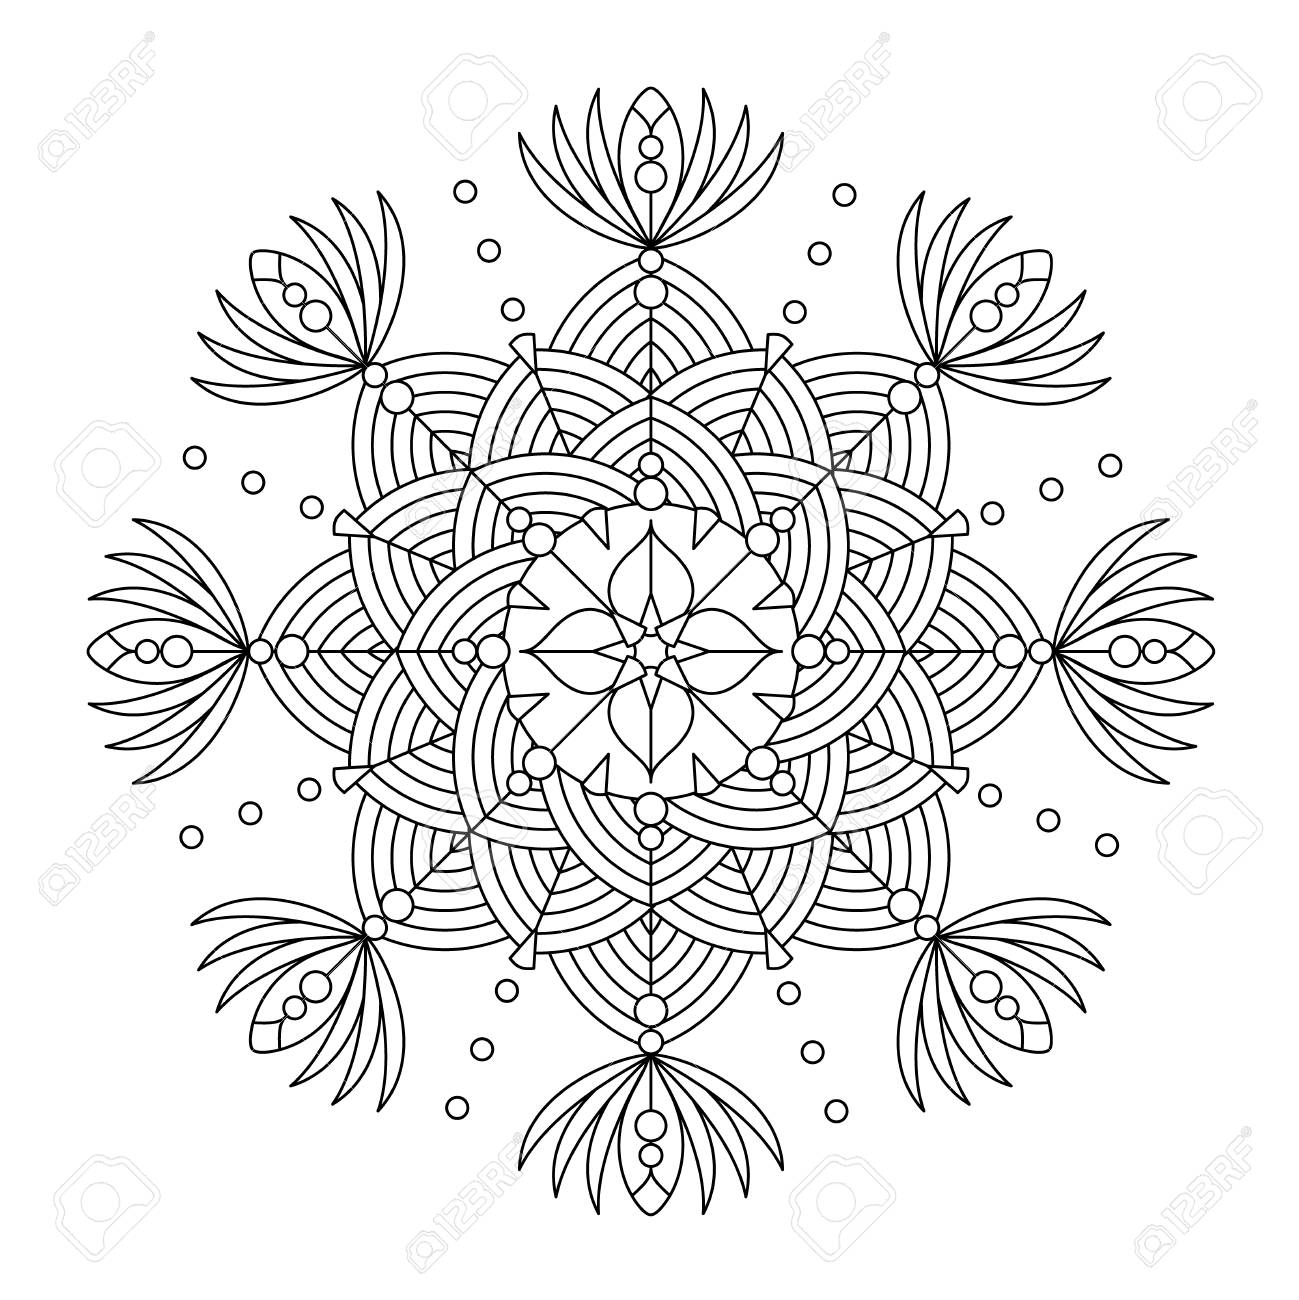 Abstract Mandala Or Whimsical Snowflake Line Art Design Or Coloring